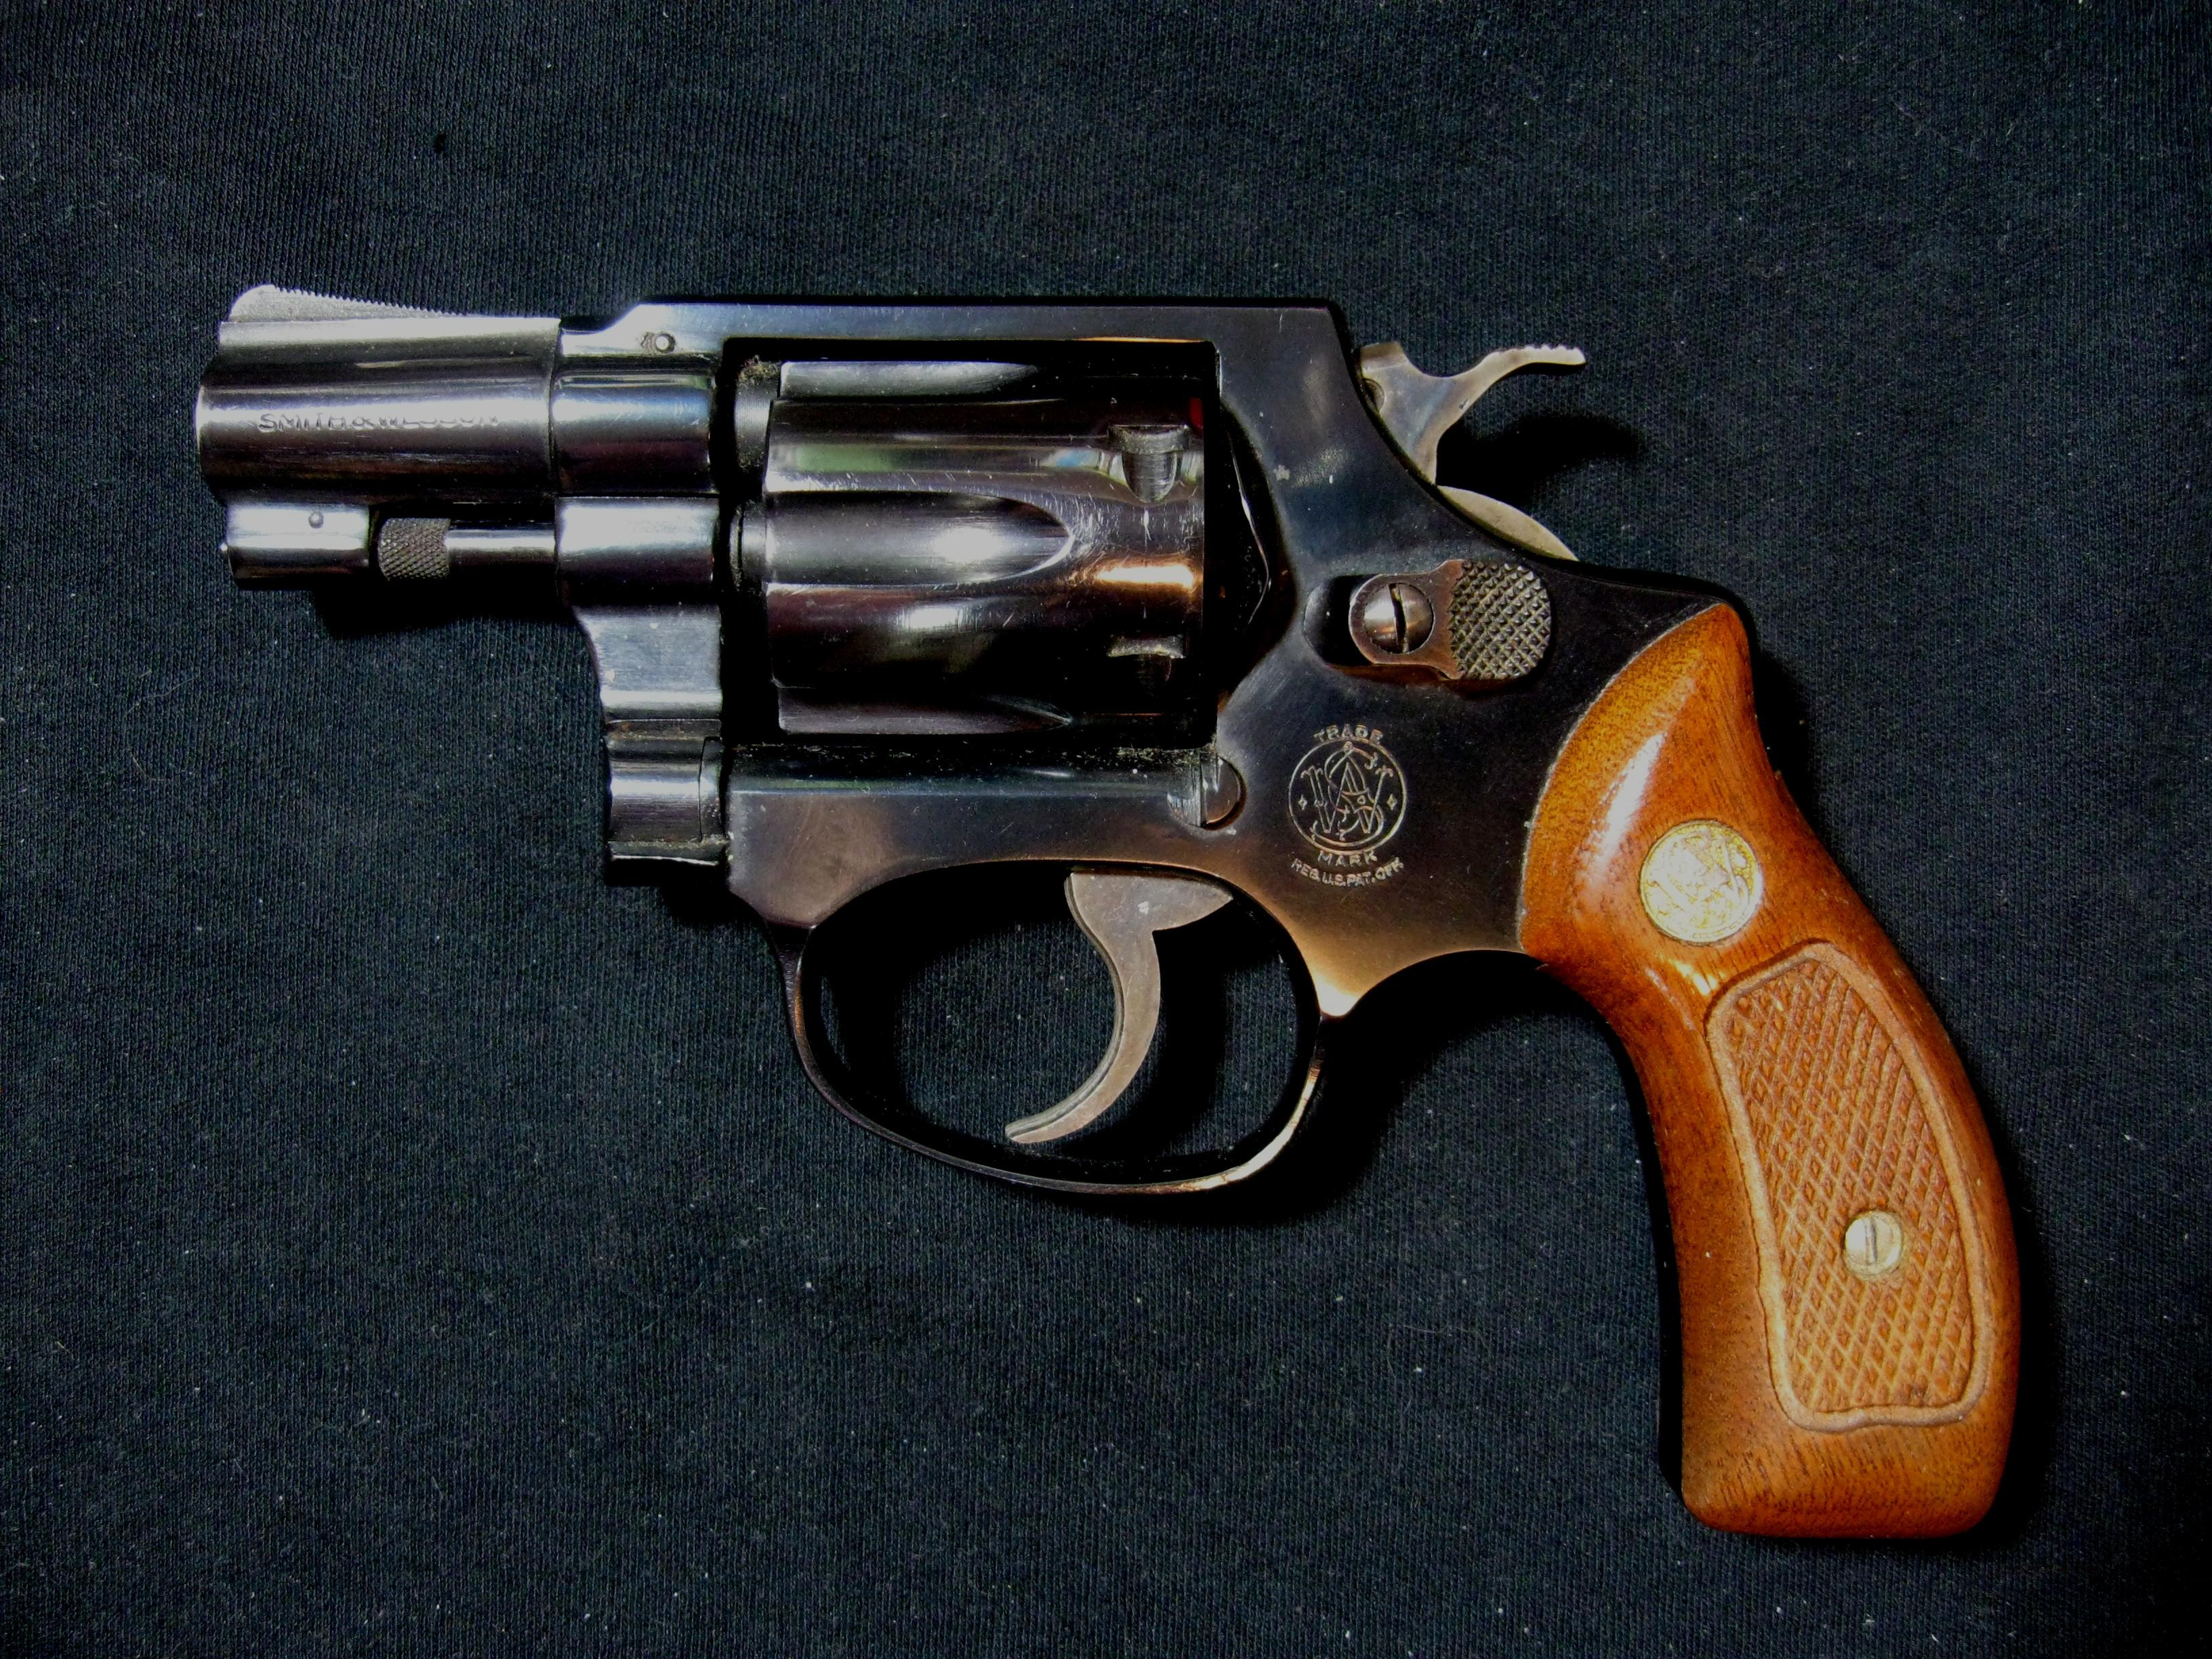 1974, Model 30-1, .32 Hand Ejector  Guns > Pistols > Smith & Wesson Revolvers > Full Frame Revolver